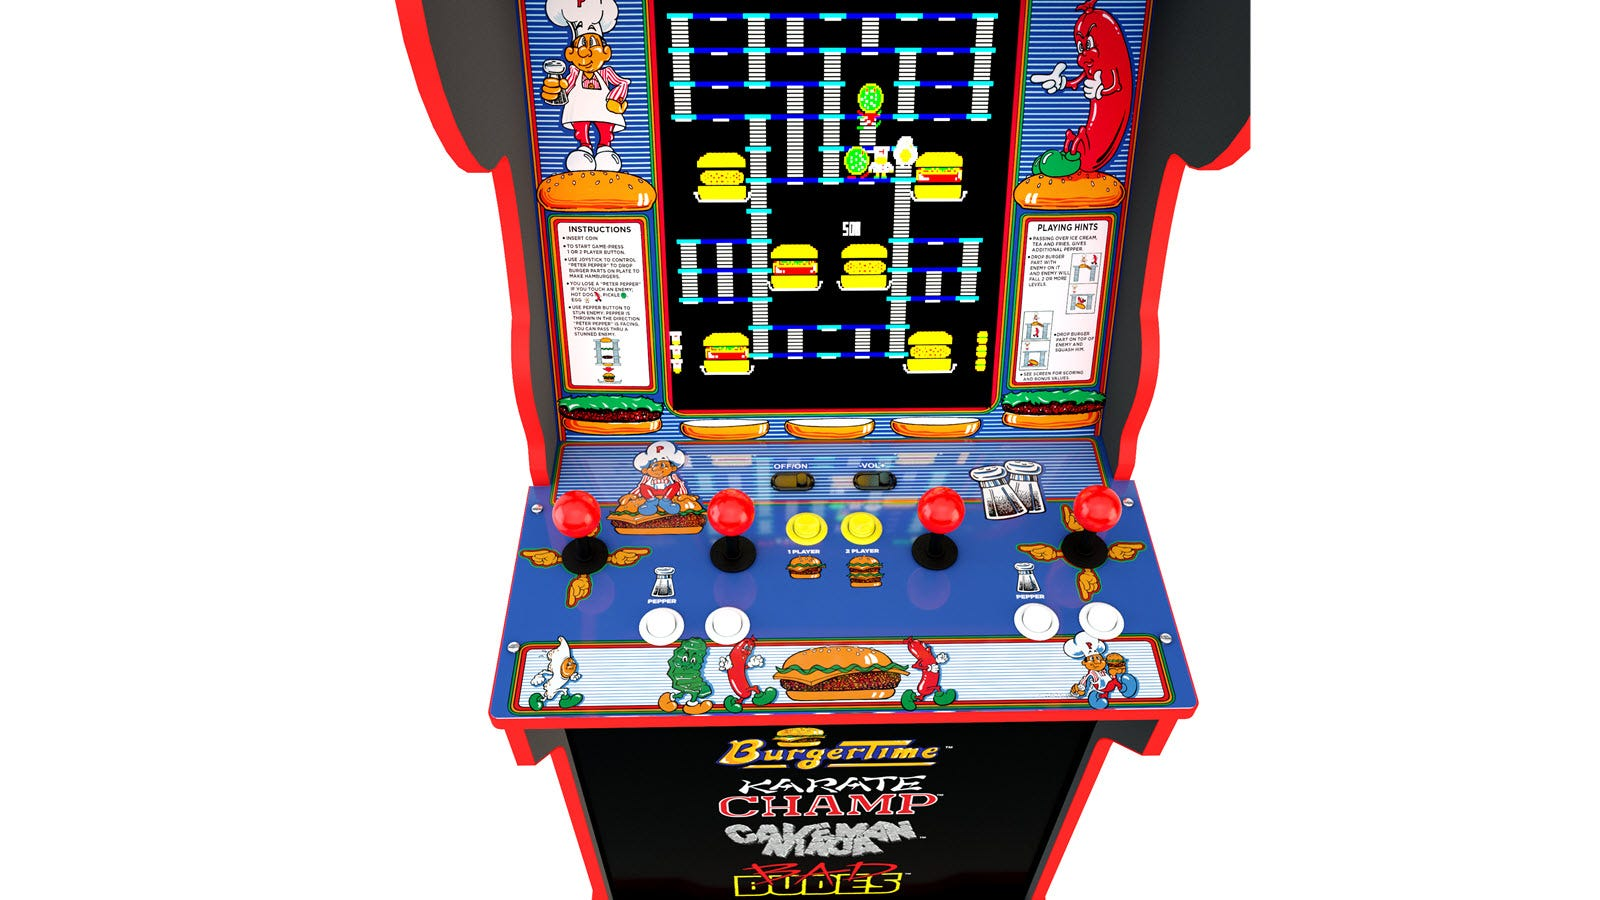 An arcade machine with four red-topped joysticks, four white buttons, and two yellow buttons.